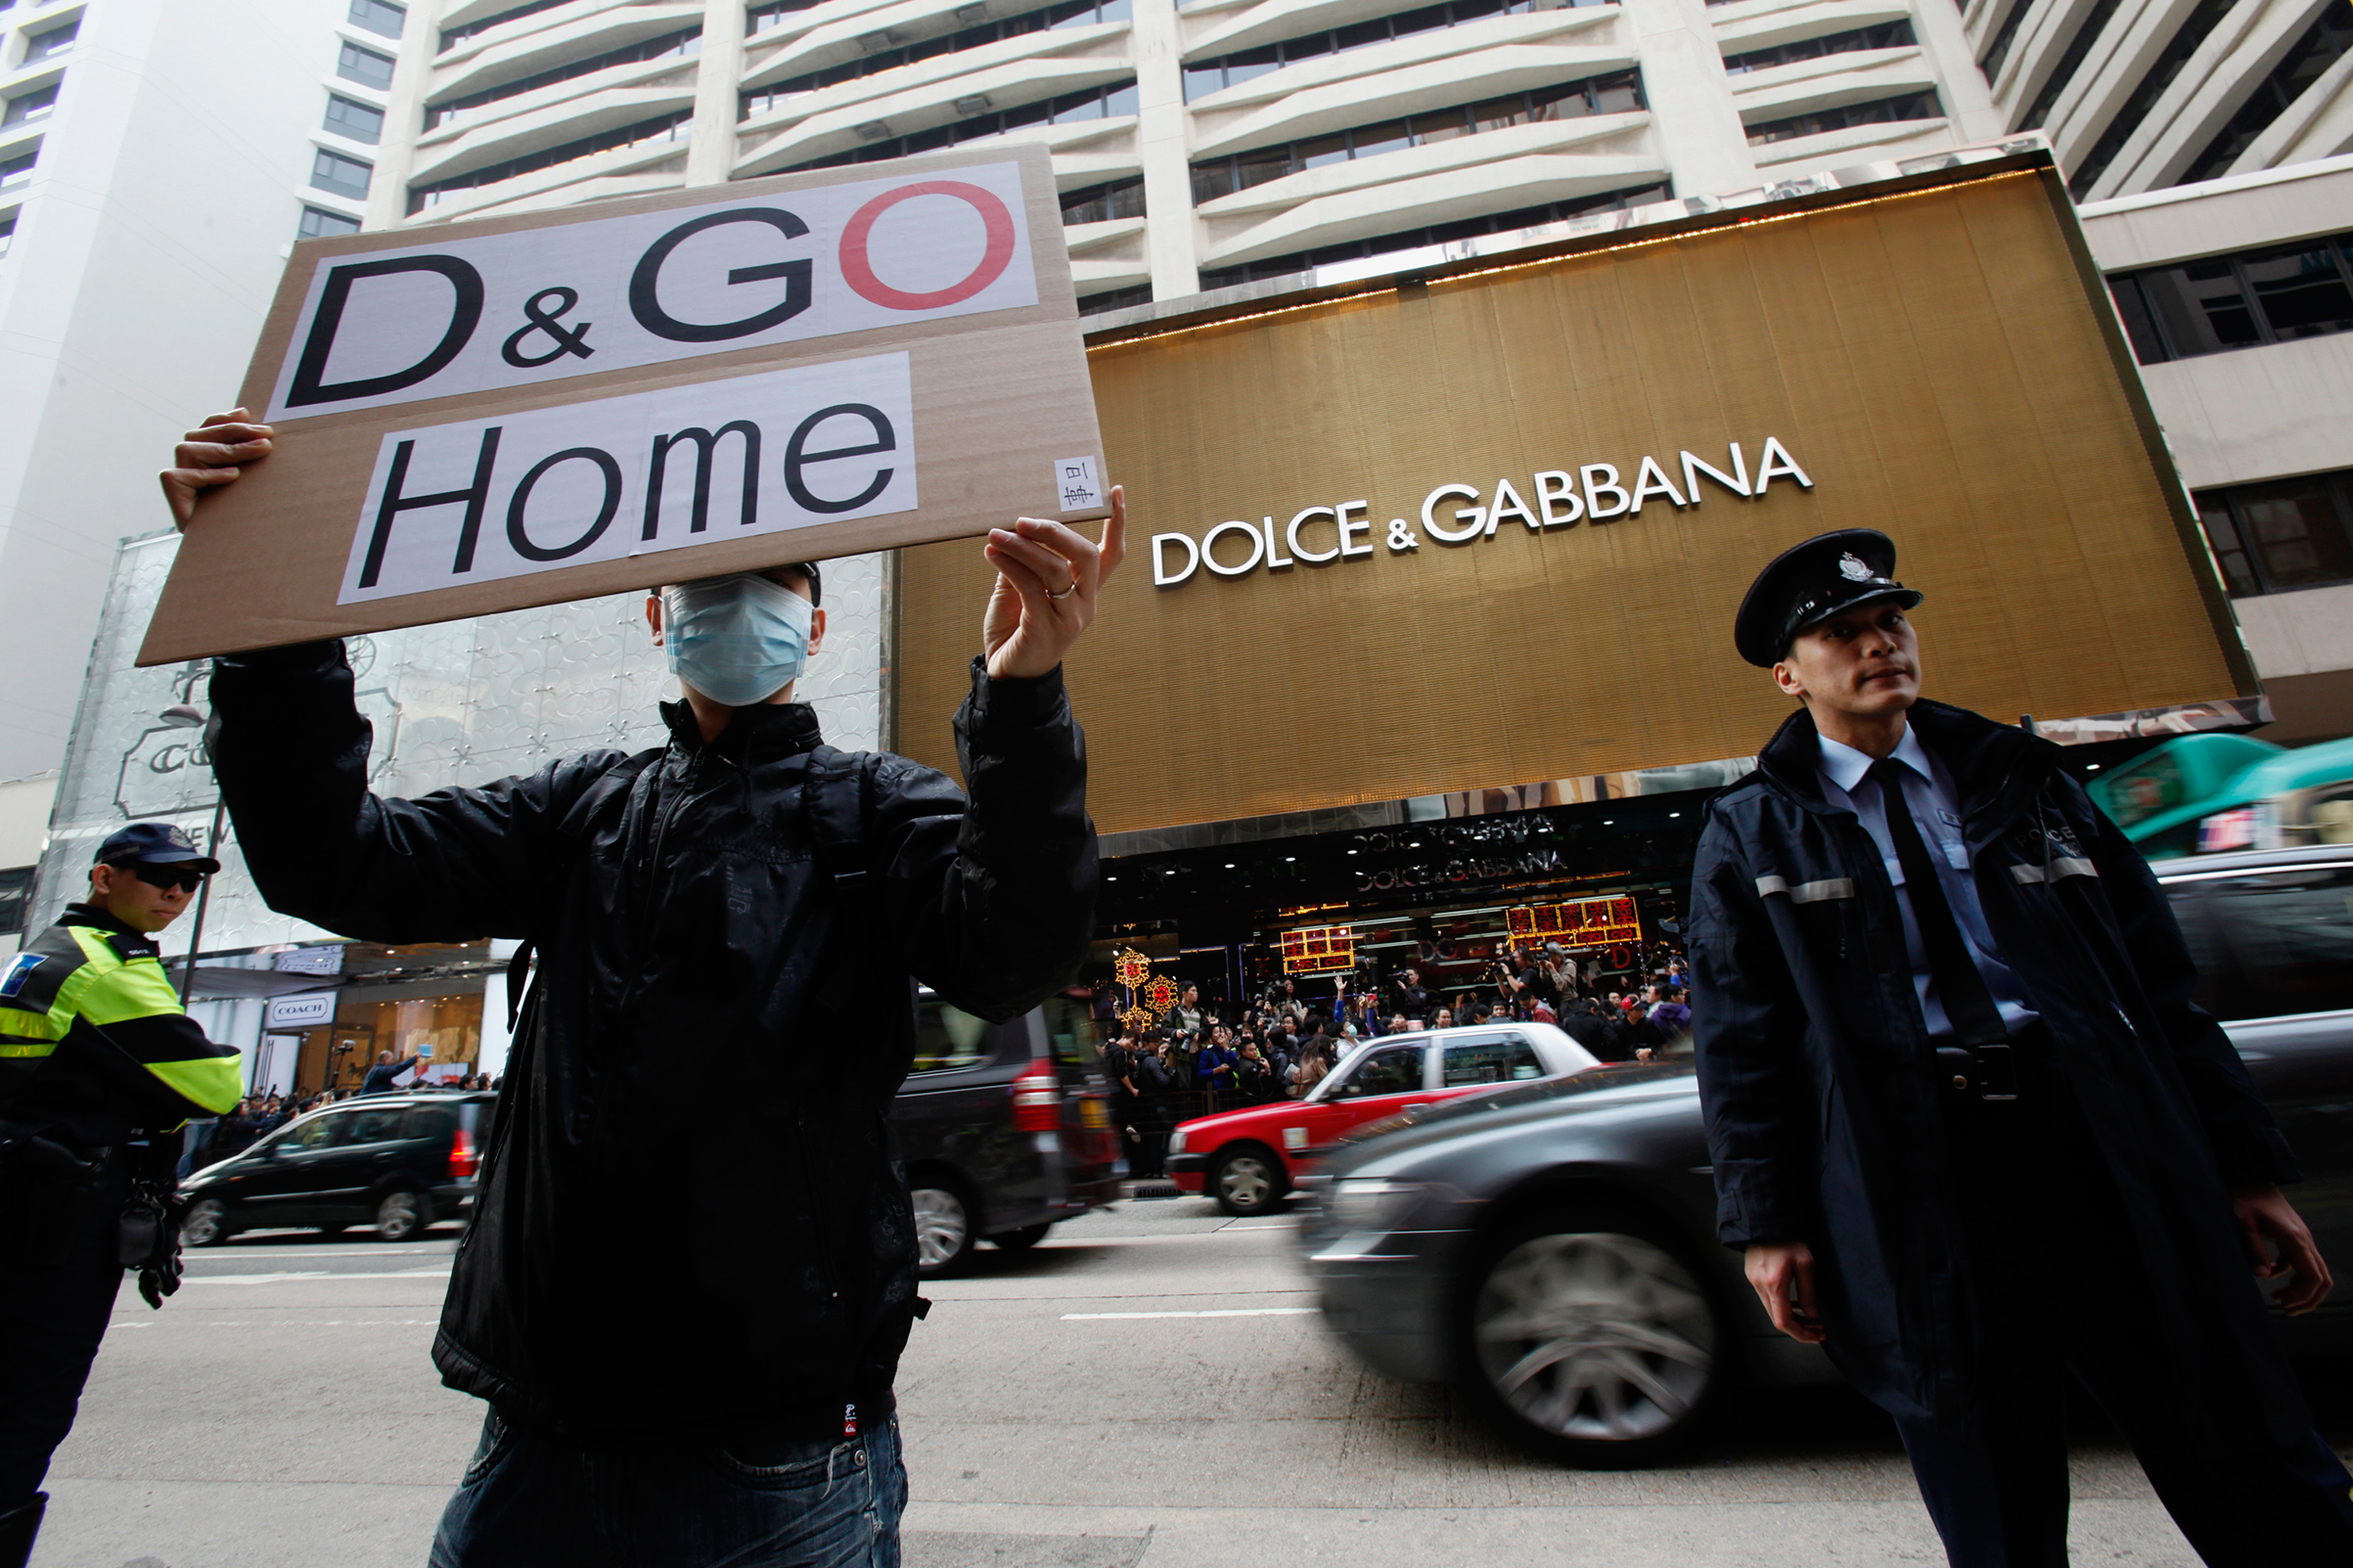 A protester holds a placard outside the flagship store of Dolce & Gabbana in Hong Kong on Jan. 8, 2012. Demonstrations erupted after the fashion chain banned Hongkongers from taking photographs outside its store — to protect its designs, the label said — but appeared to allow mainland Chinese shoppers to snap away without interference. Though seemingly trivial, the photo ban touched a painfully raw nerve among local people, who feared that the territory was being invaded, politically and economically, by Beijing.